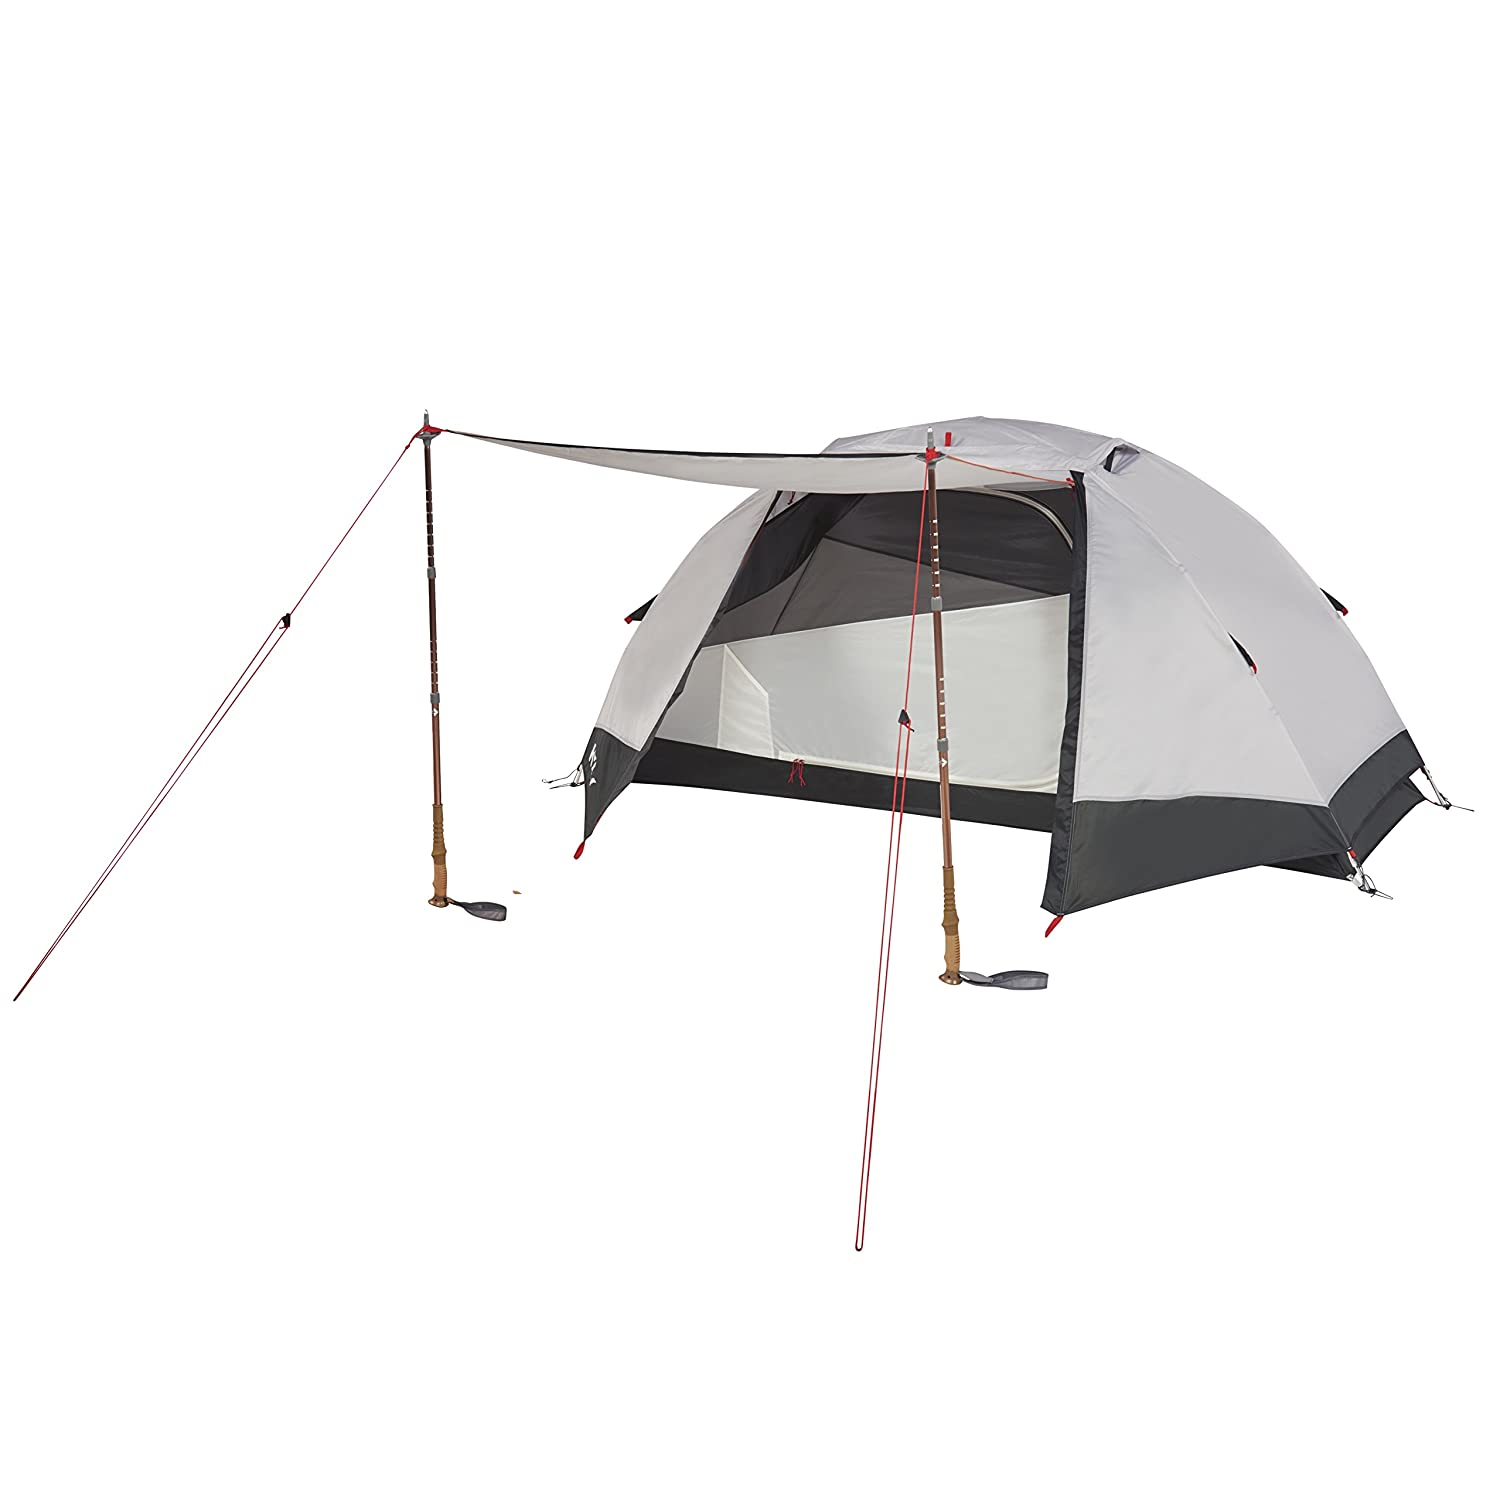 3. Kelty Gunnison Backpacking Tent